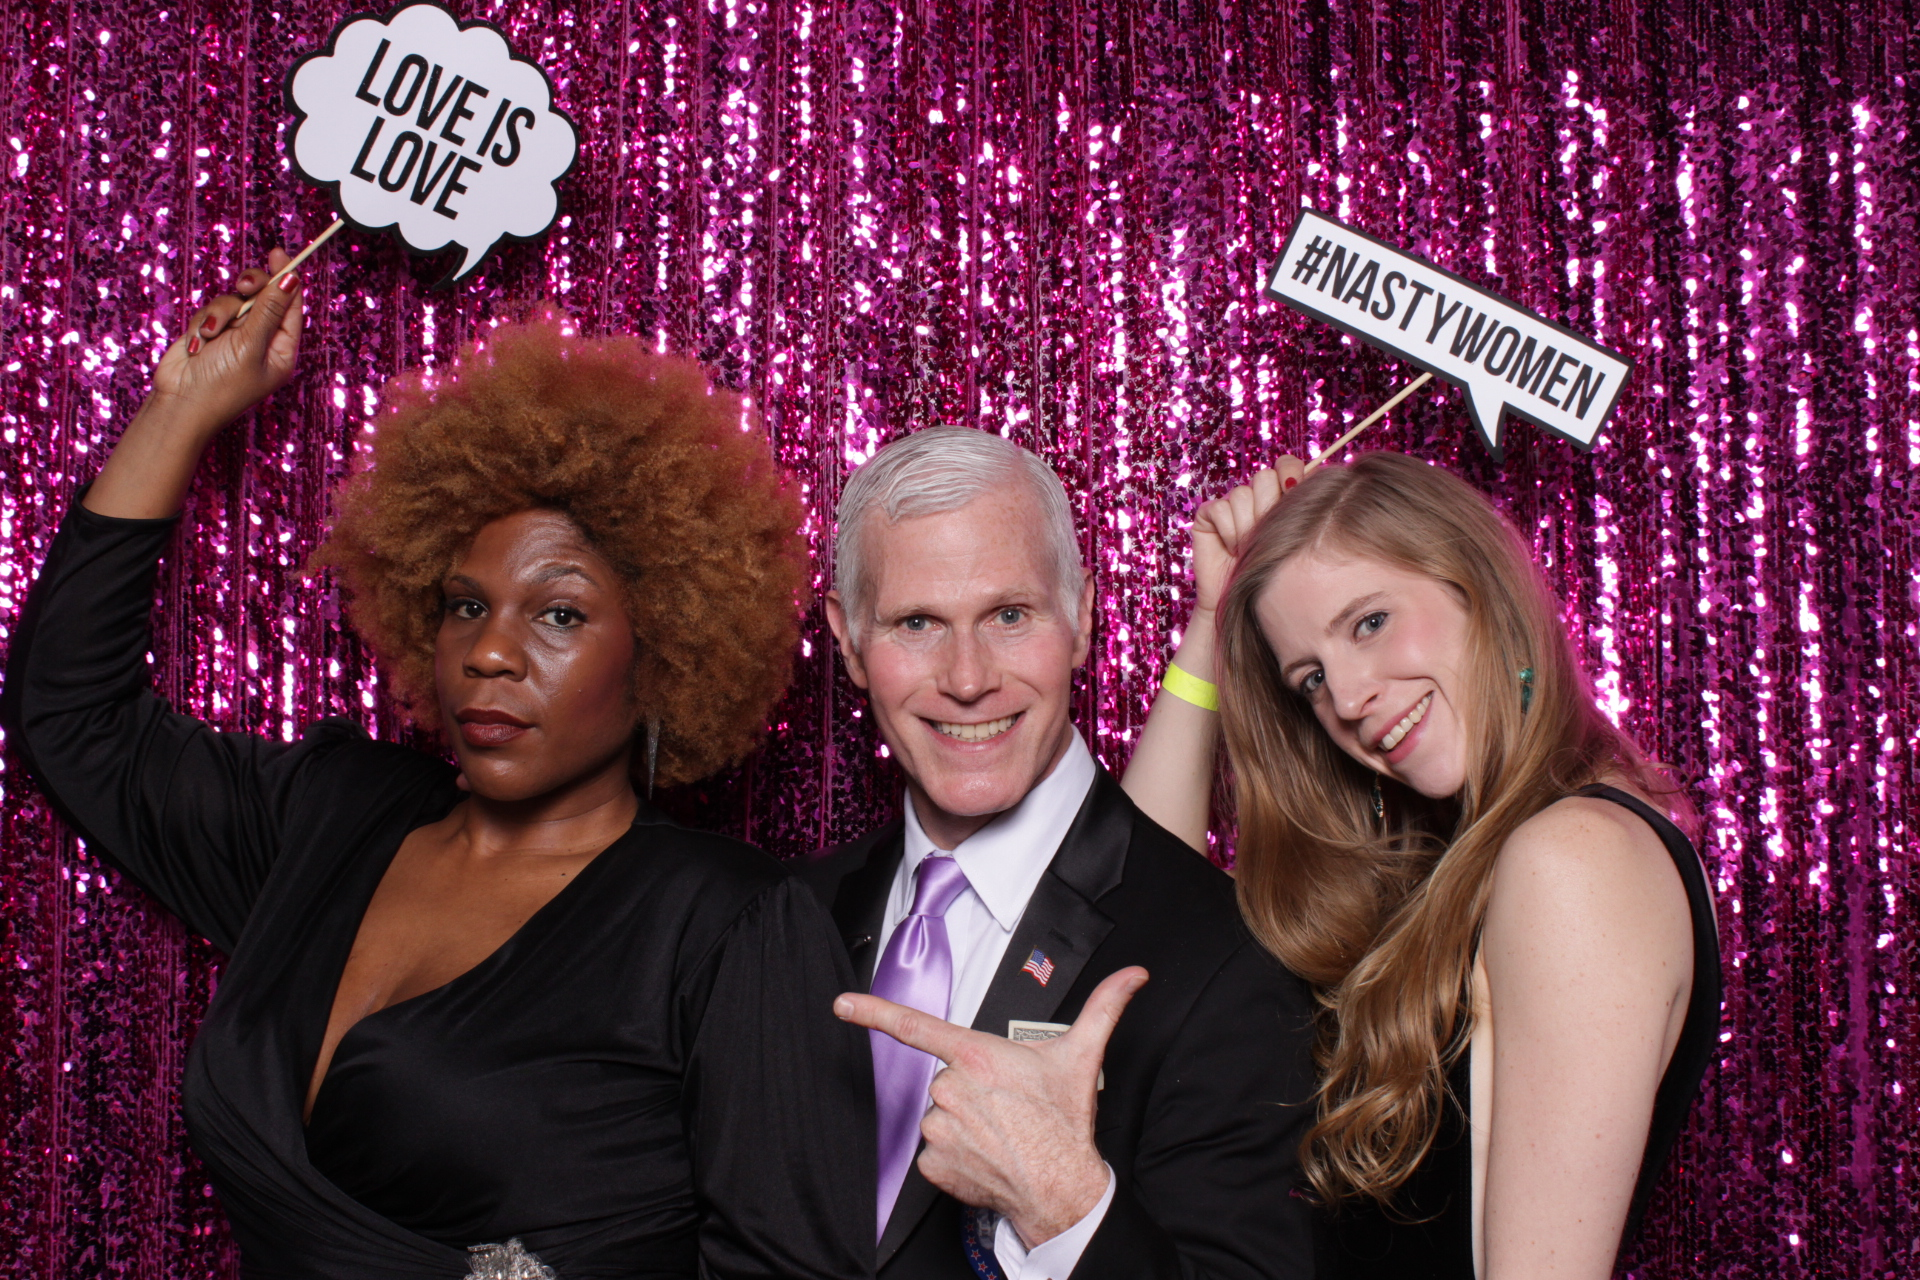 UNITY BALL DC | HOT PINK PHOTO BOOTH